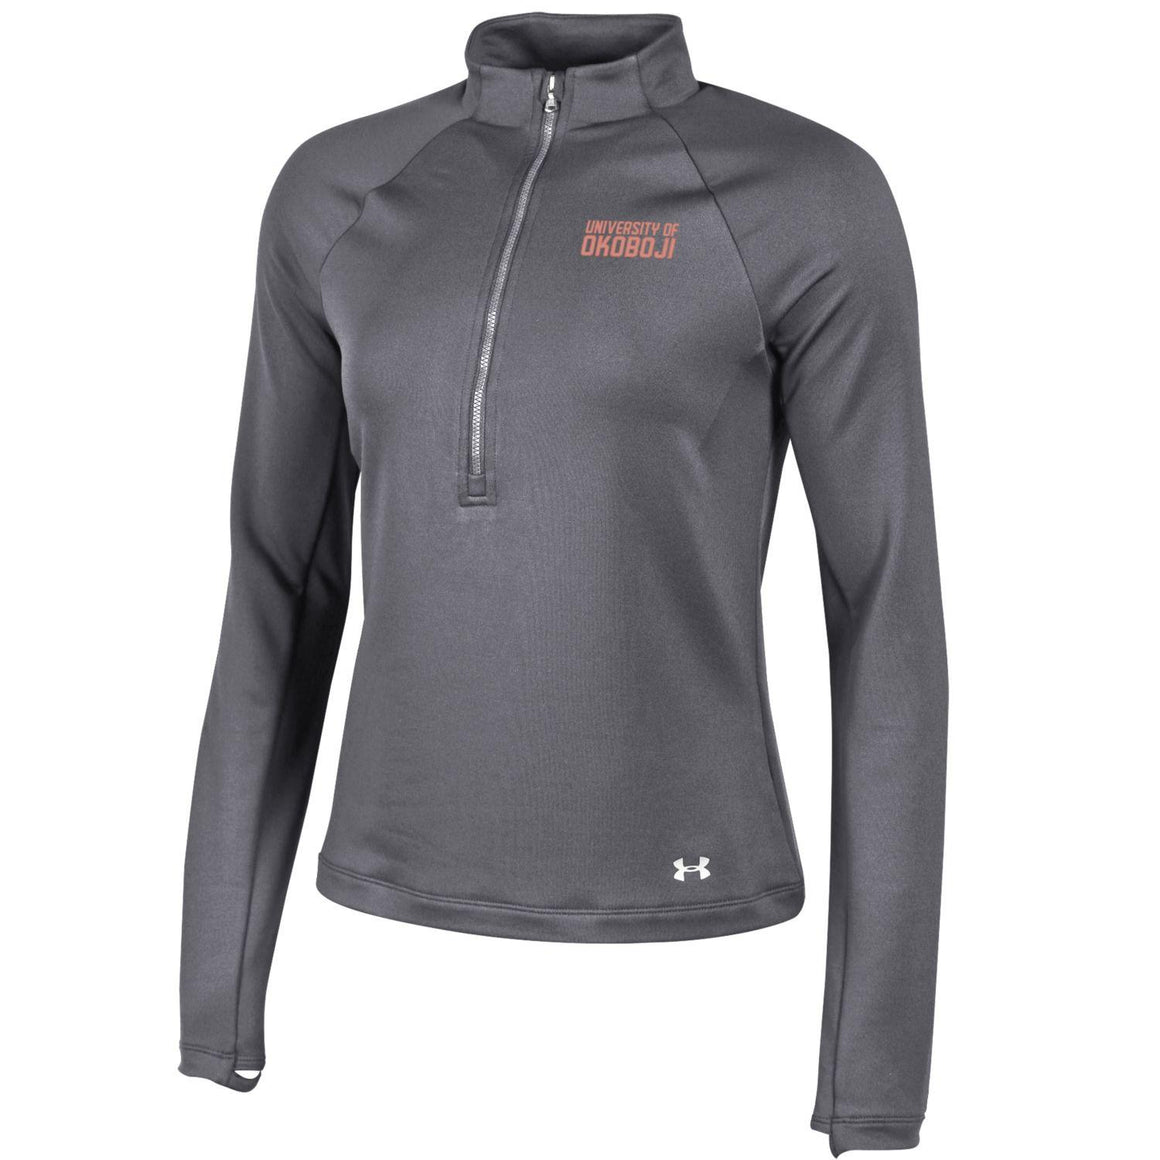 Ladies OKOBOJI Under Armour 1/4 Zip - Gray